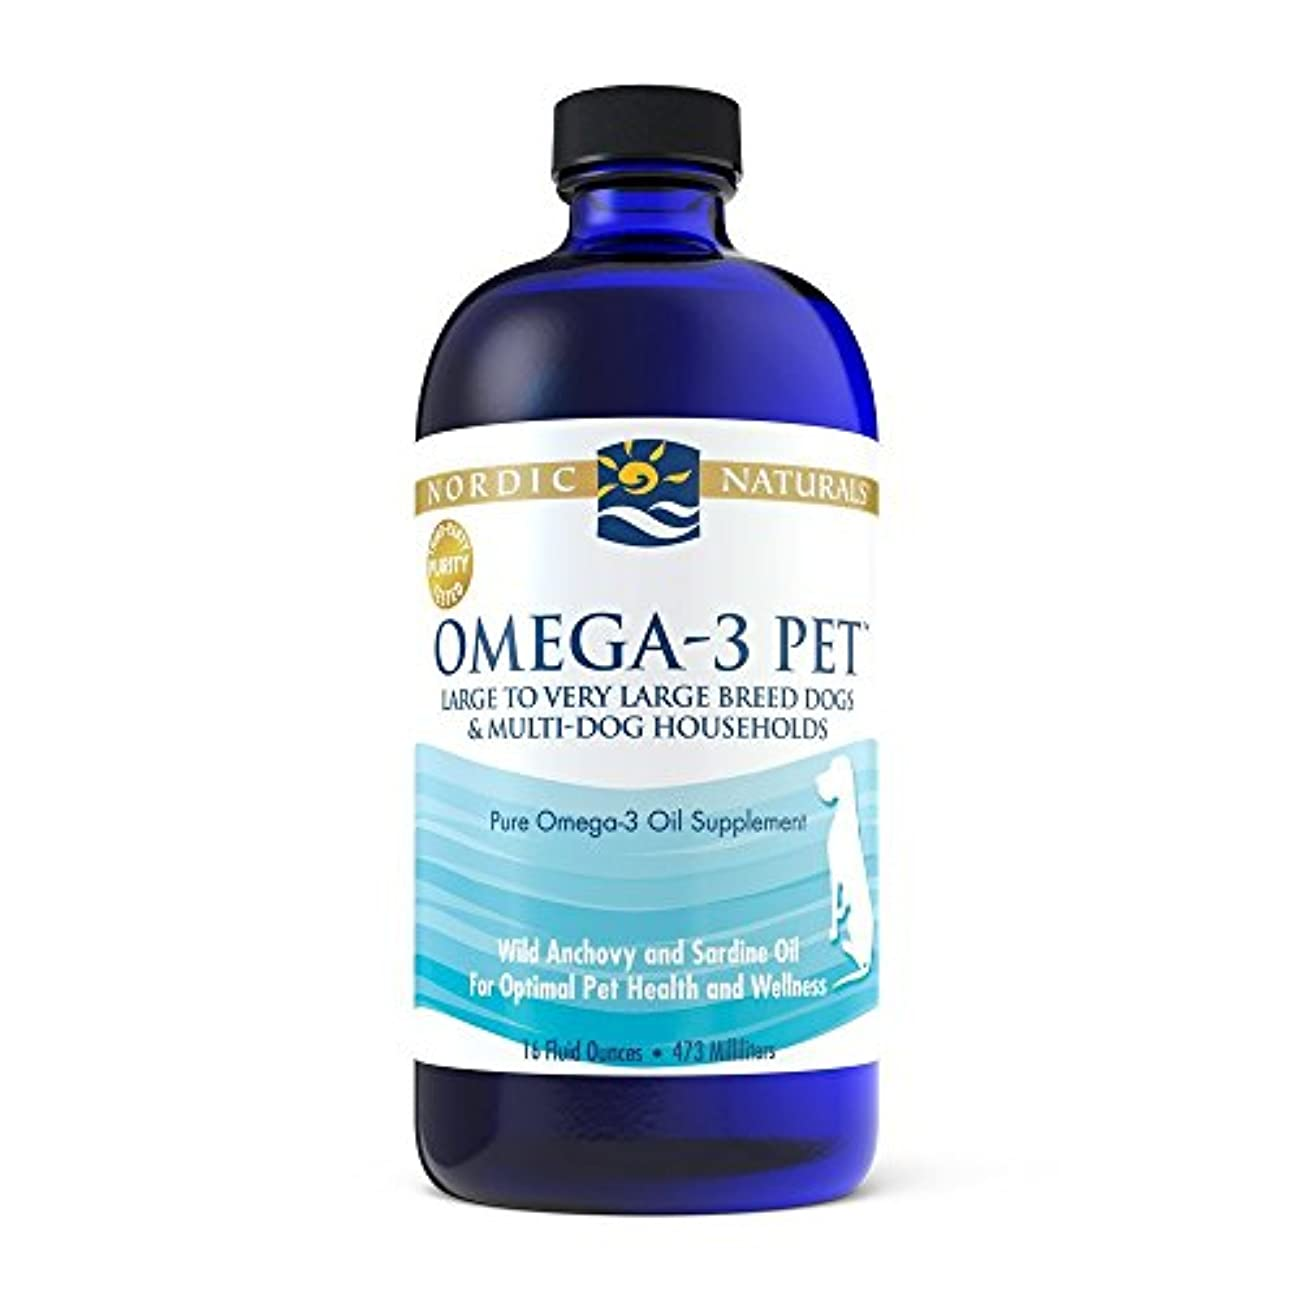 許可虚栄心反射Nordic Naturals Fish Oil OMEGA-3 Essential Fatty Acid for Dogs + Cats 16 oz 海外直送品